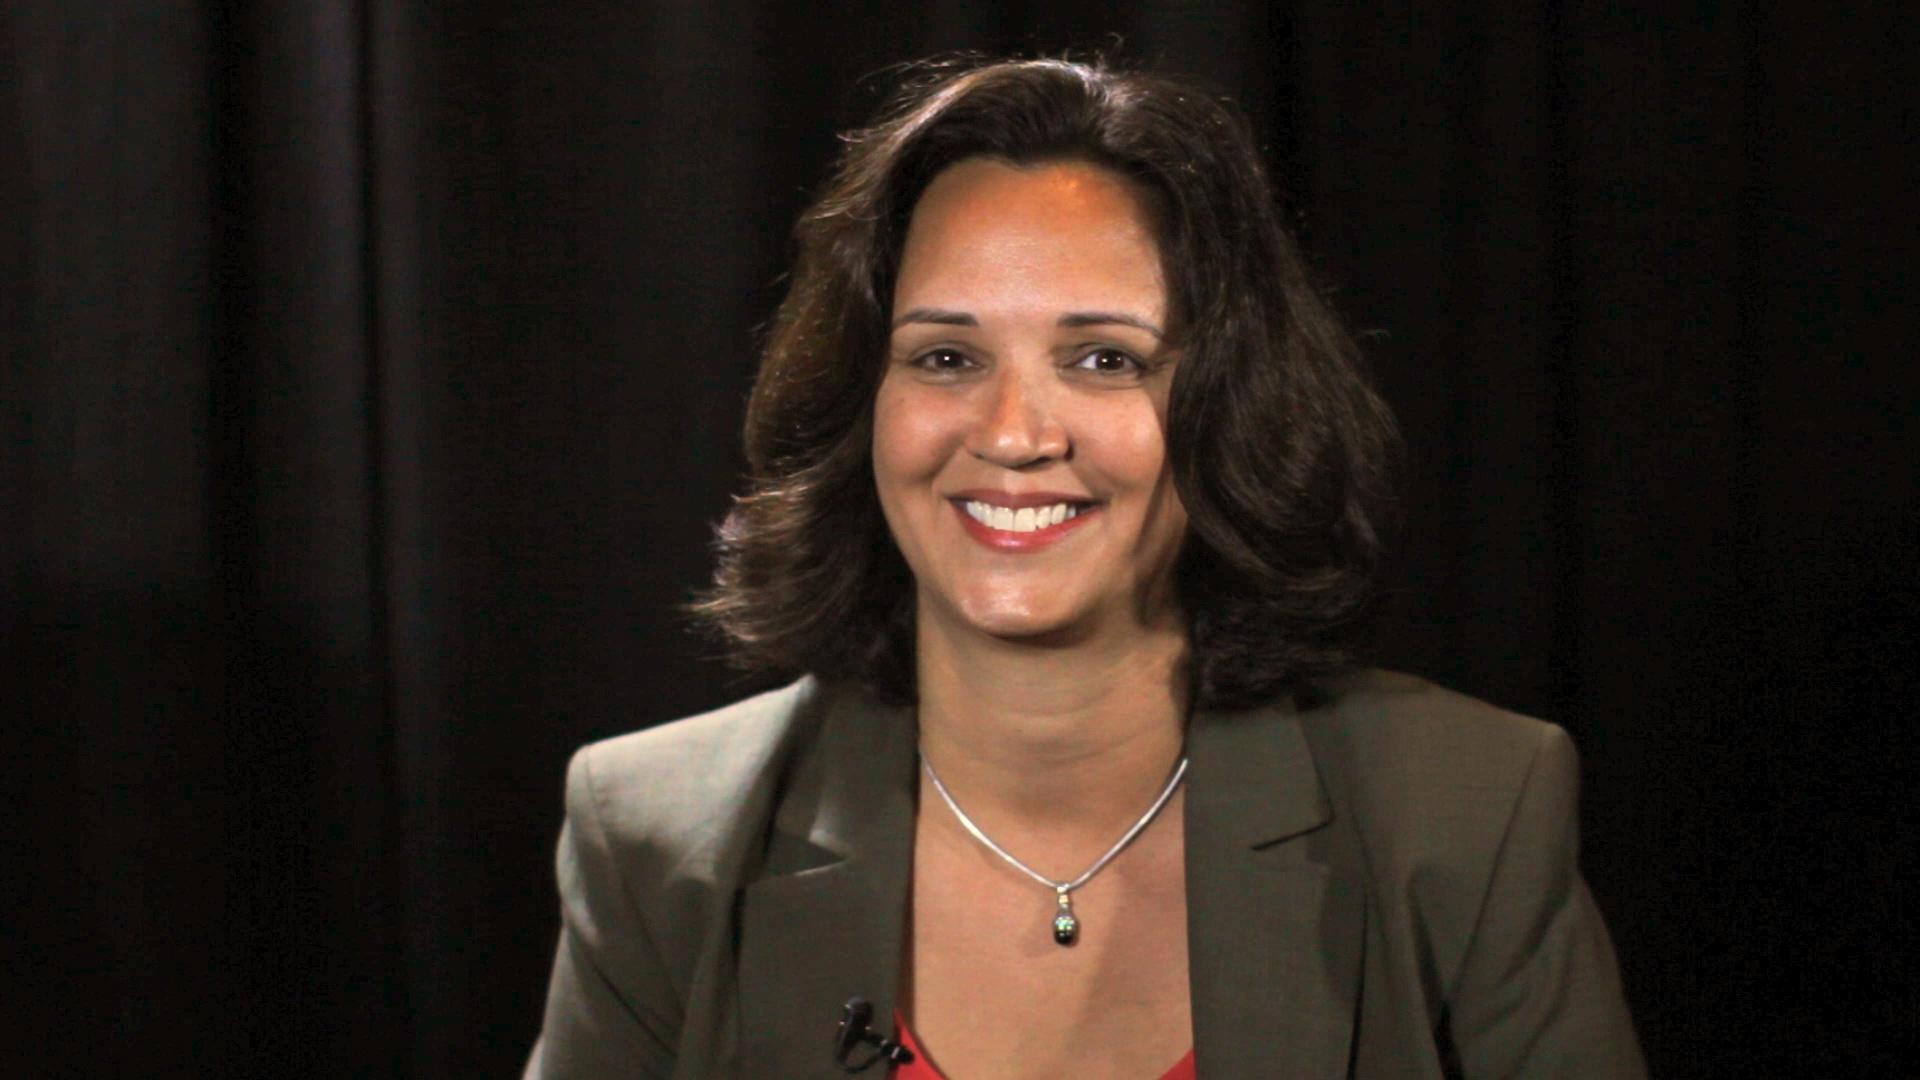 Video preview: Lots Of Talk About Inkjet But There's Still Life In Toner, Says Xerox' Ragni Mehta